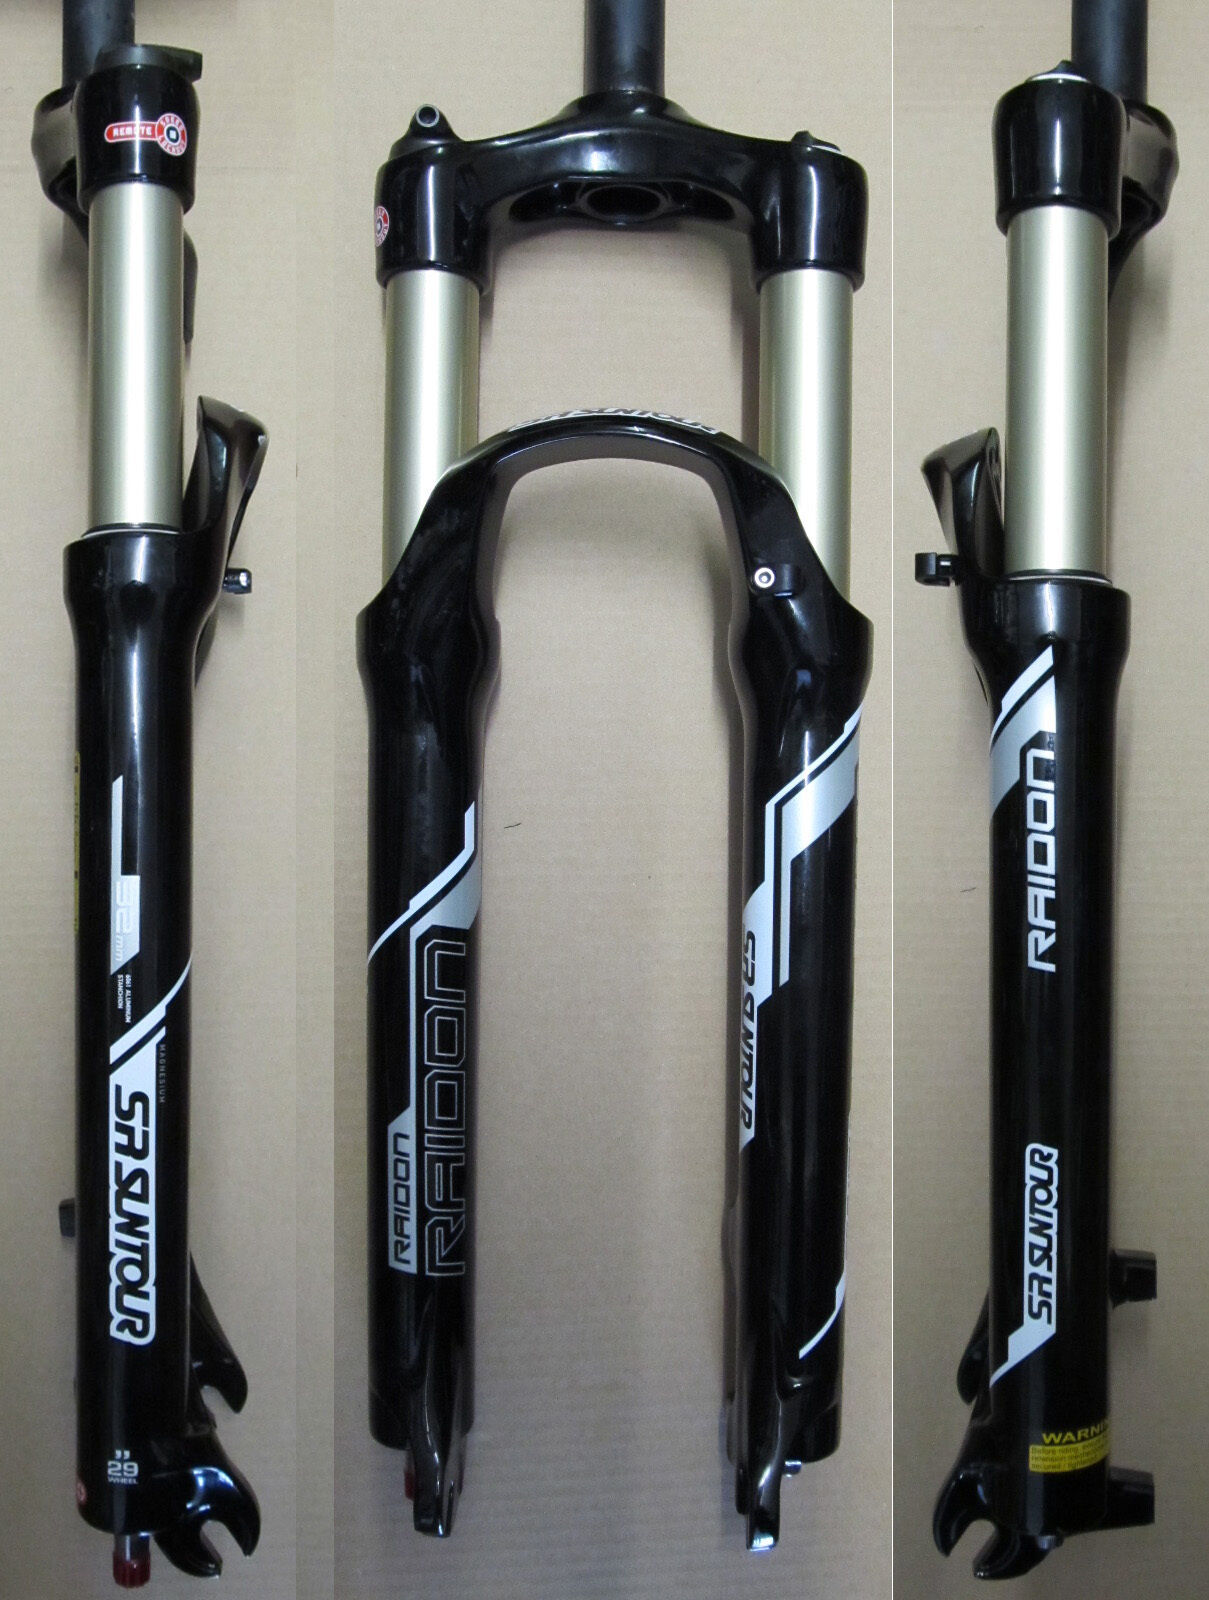 Suntour Raidon XC Rl-R 5 1 8in  Suspension Fork 29   29er MTB  we take customers as our god